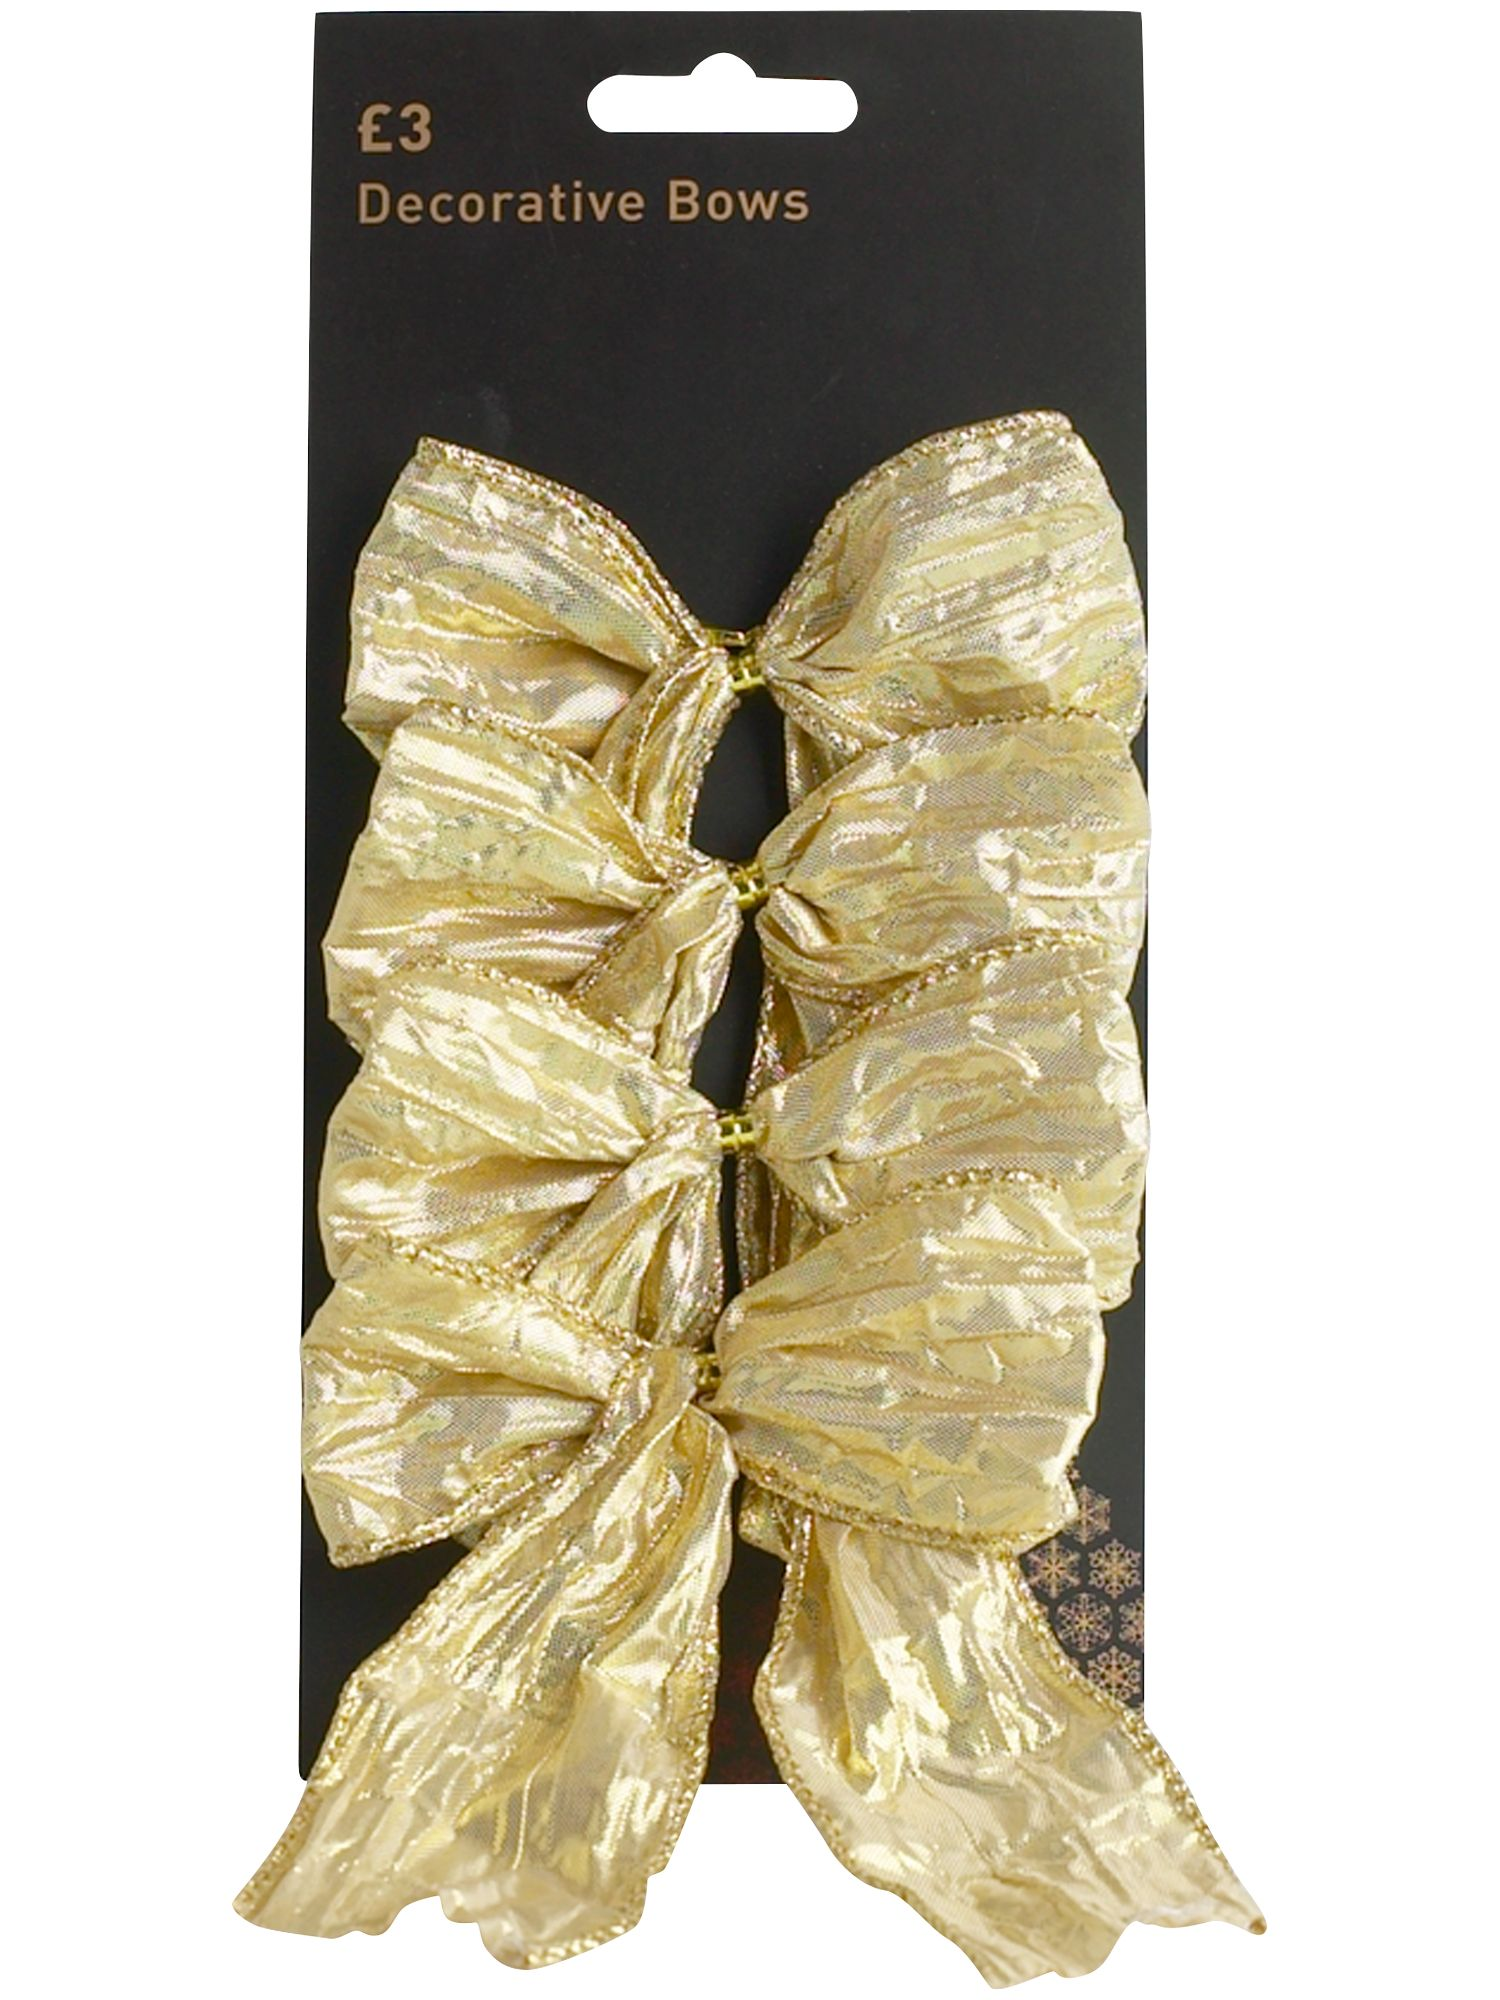 Renaissance set of four gold bows